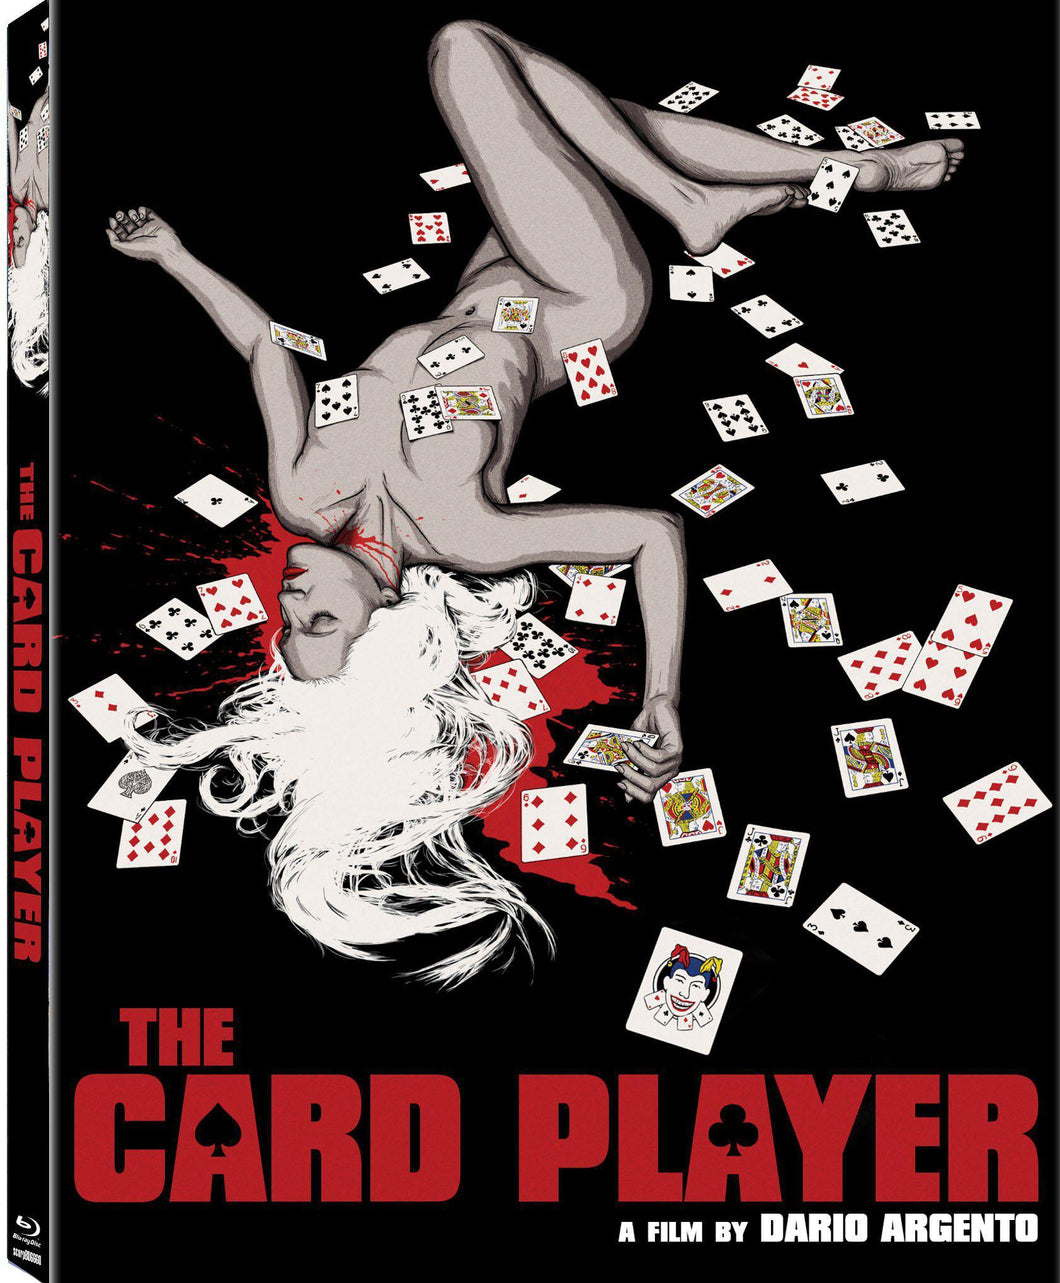 The Card Player (Blu-ray): Ronin Flix - Slipcover